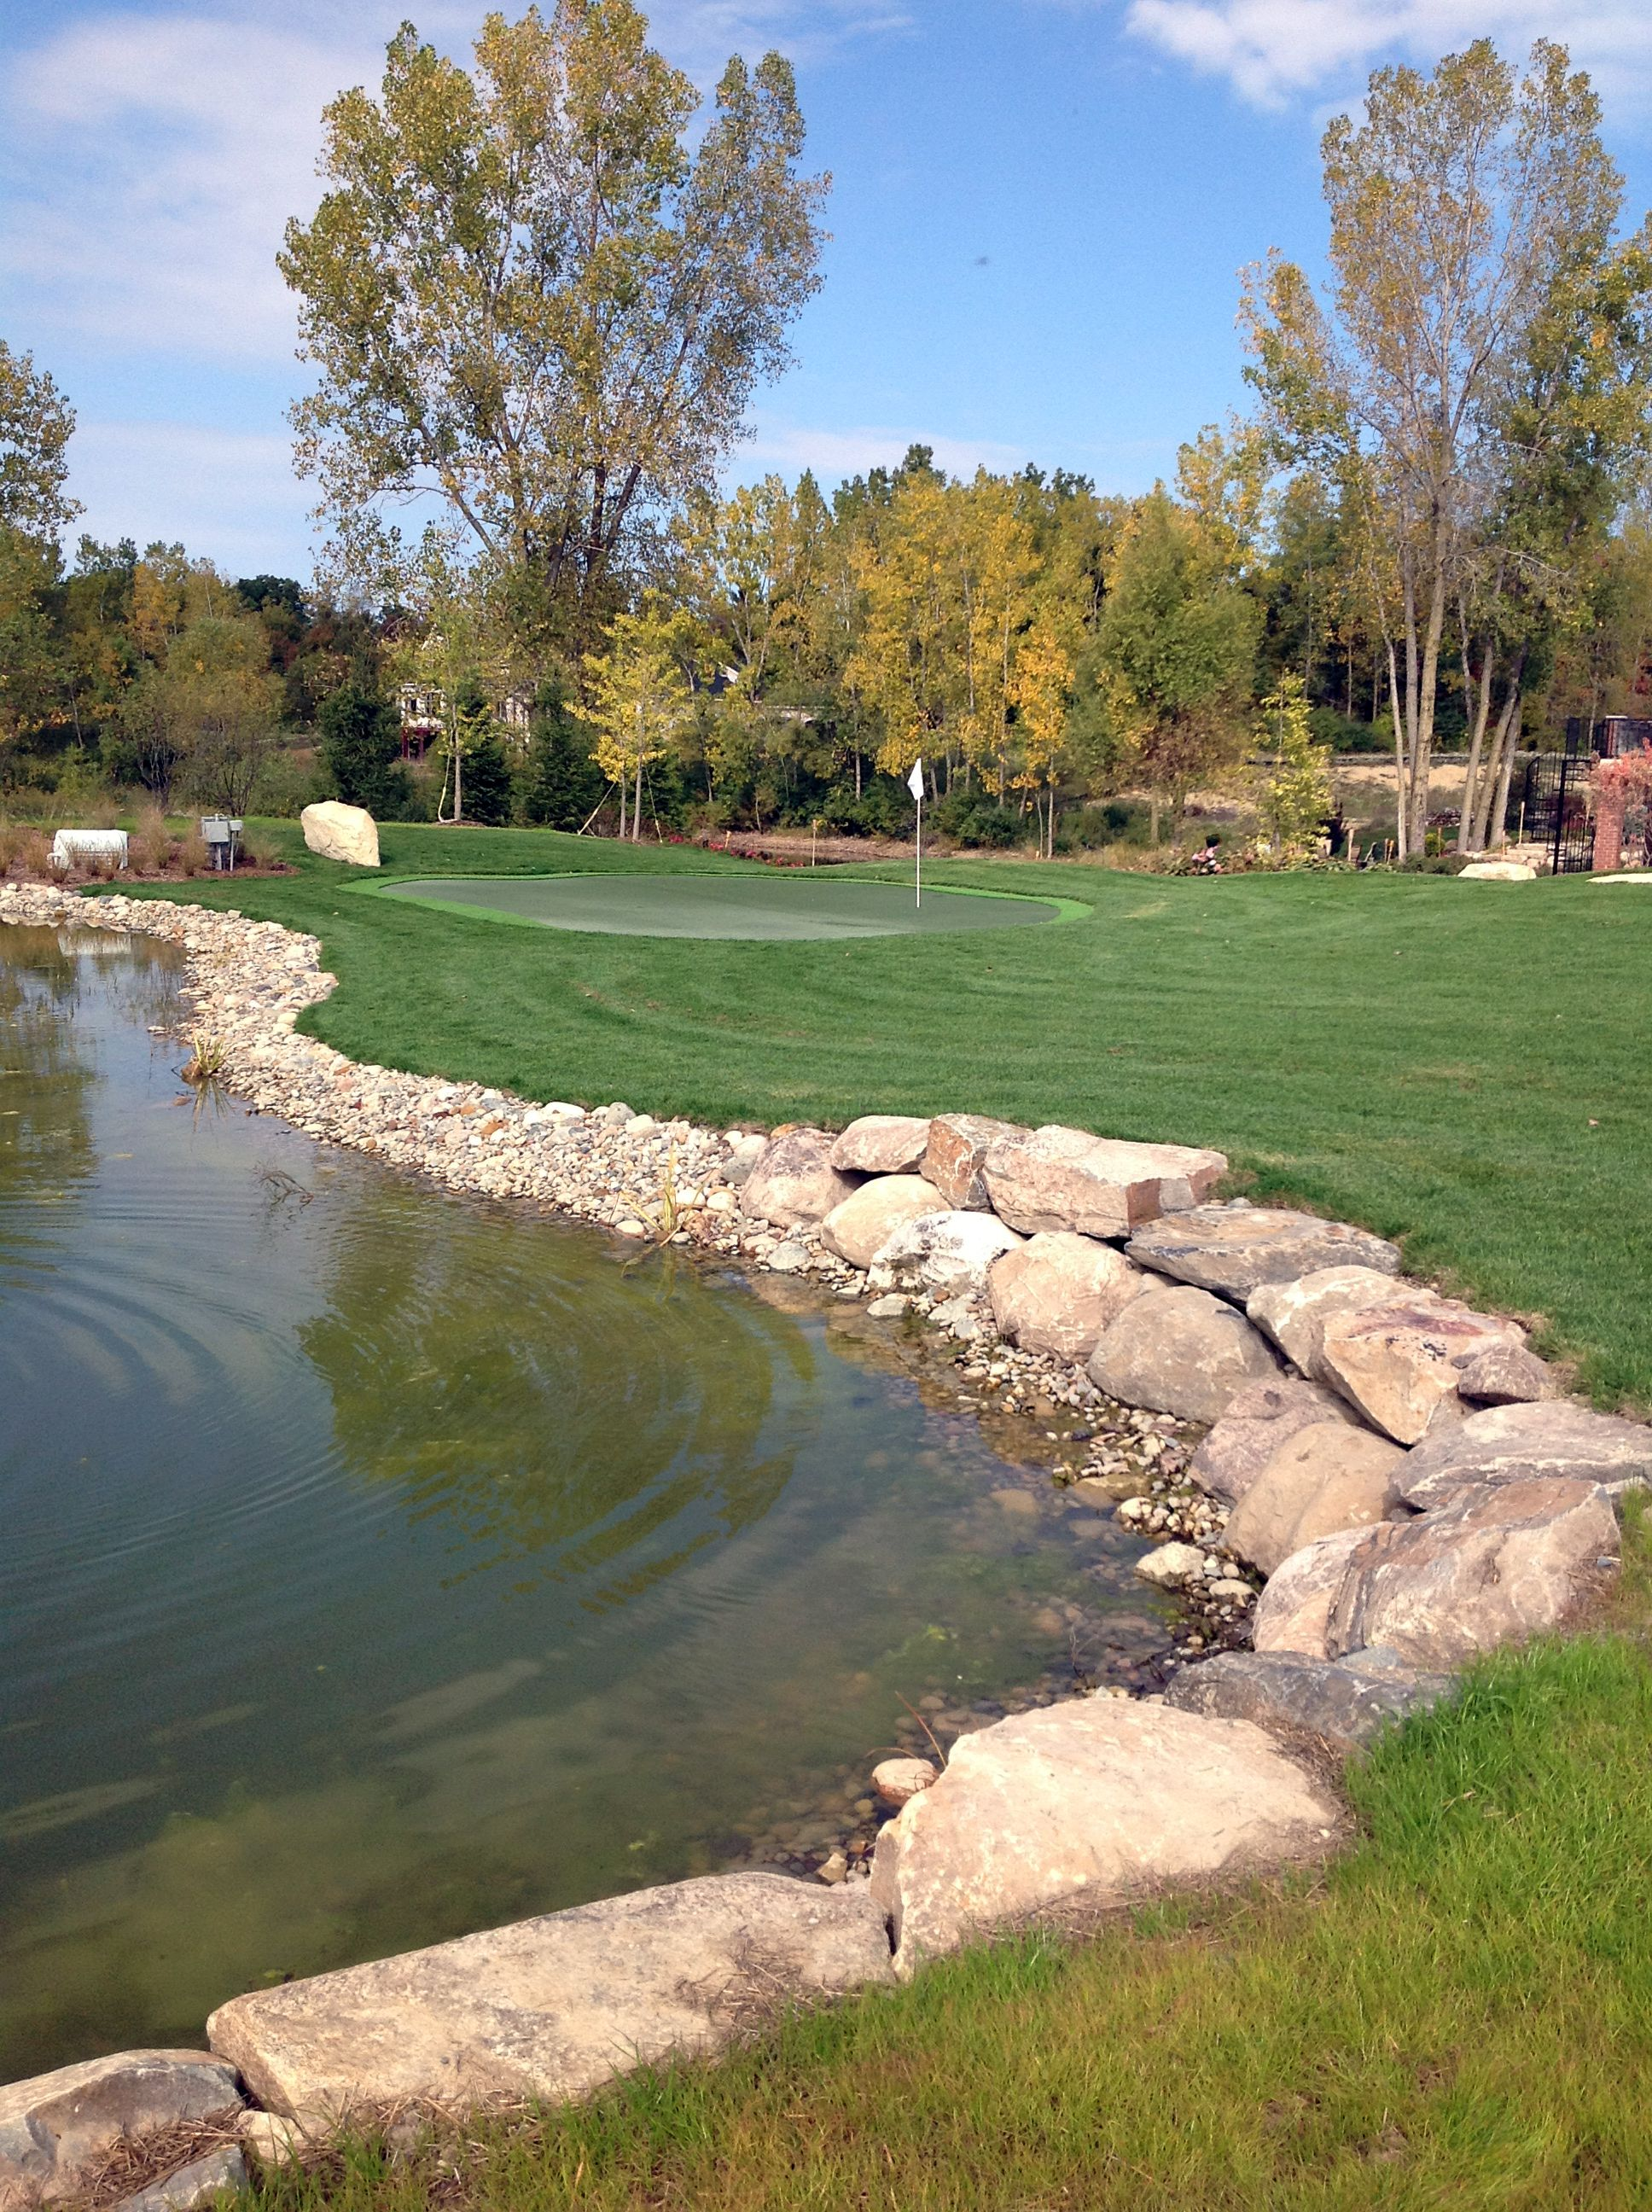 Field Boulder Retaining Wall Separating The Private Home Golf Course From The Man Made Pond Lake Landscaping Pond Landscaping Farm Pond